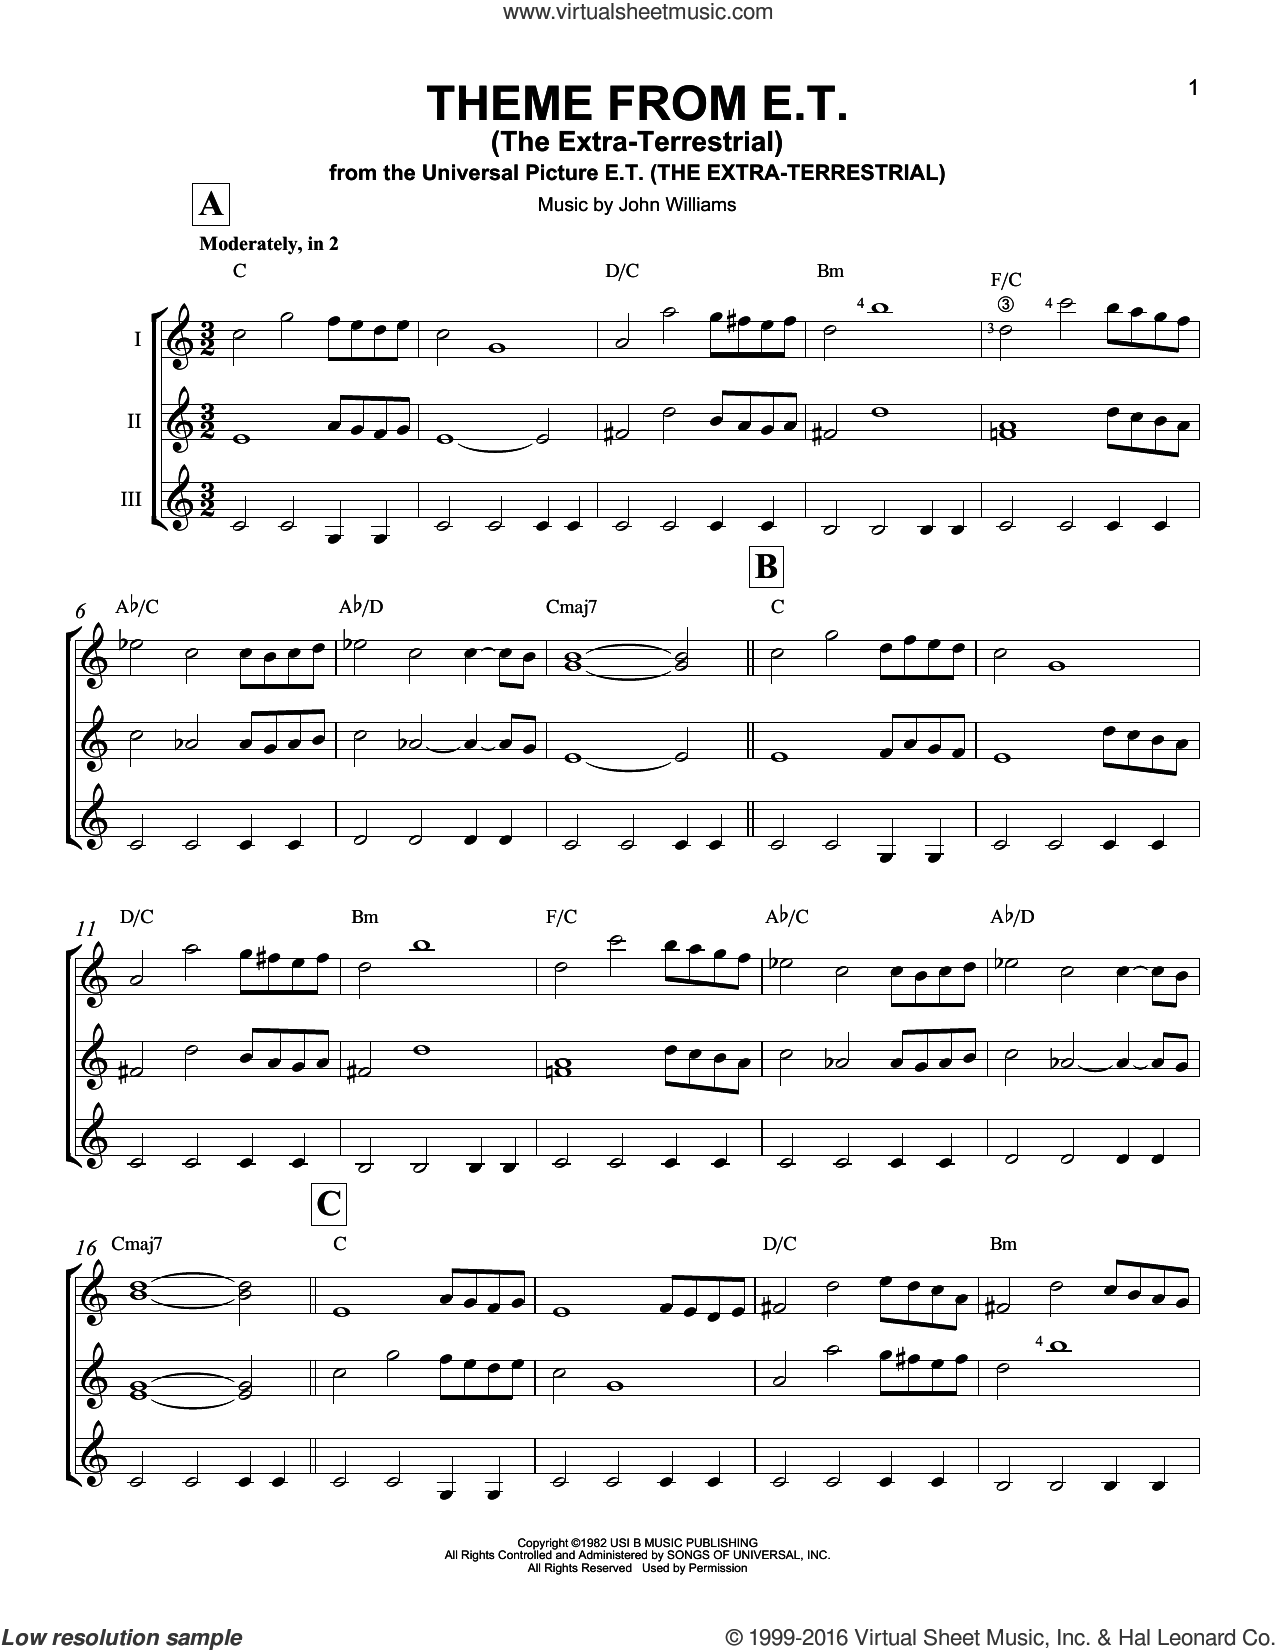 Theme From E.T. (The Extra-Terrestrial) sheet music for guitar ensemble by John Williams, intermediate skill level